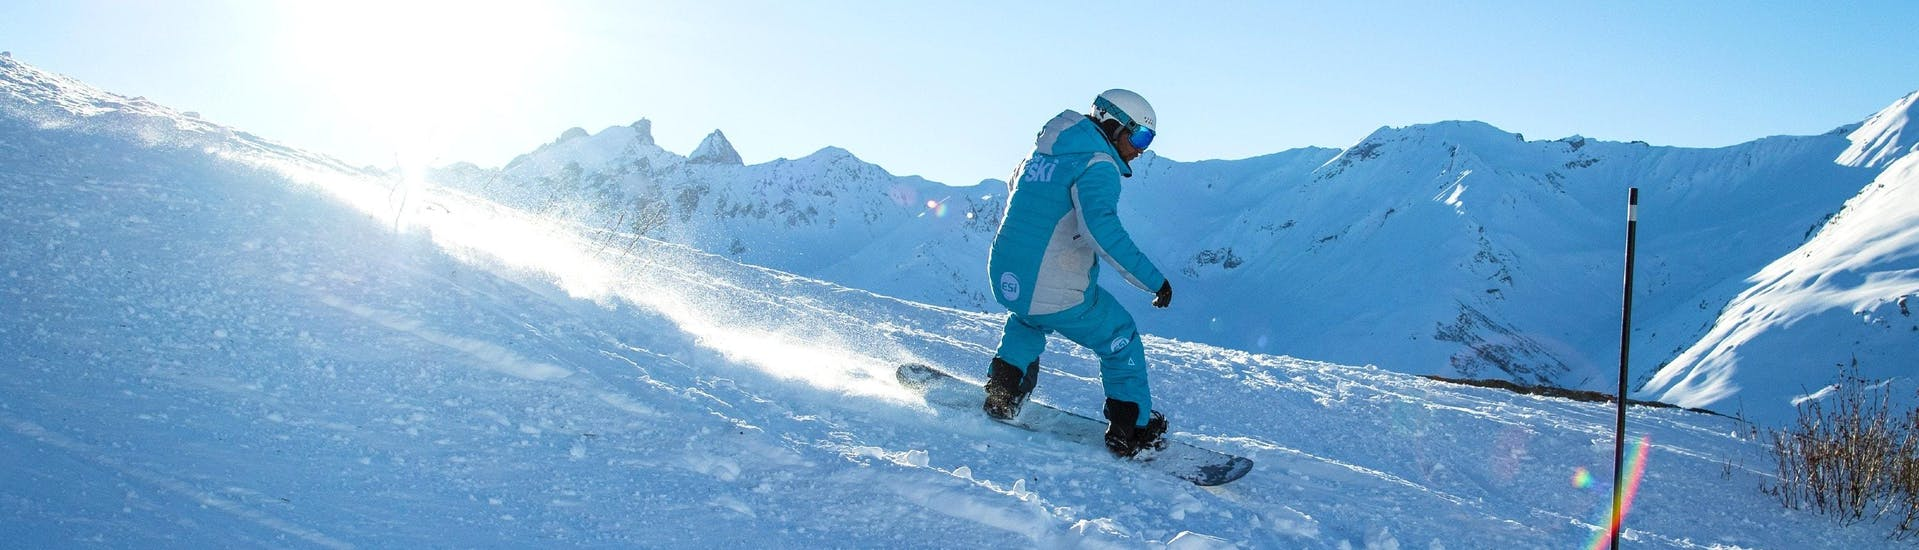 A snowboarder is sliding down a slope during his Private Snowboarding Lessons for All Levels - Afternoon with the ski school ESI Ski Family in Risoul.